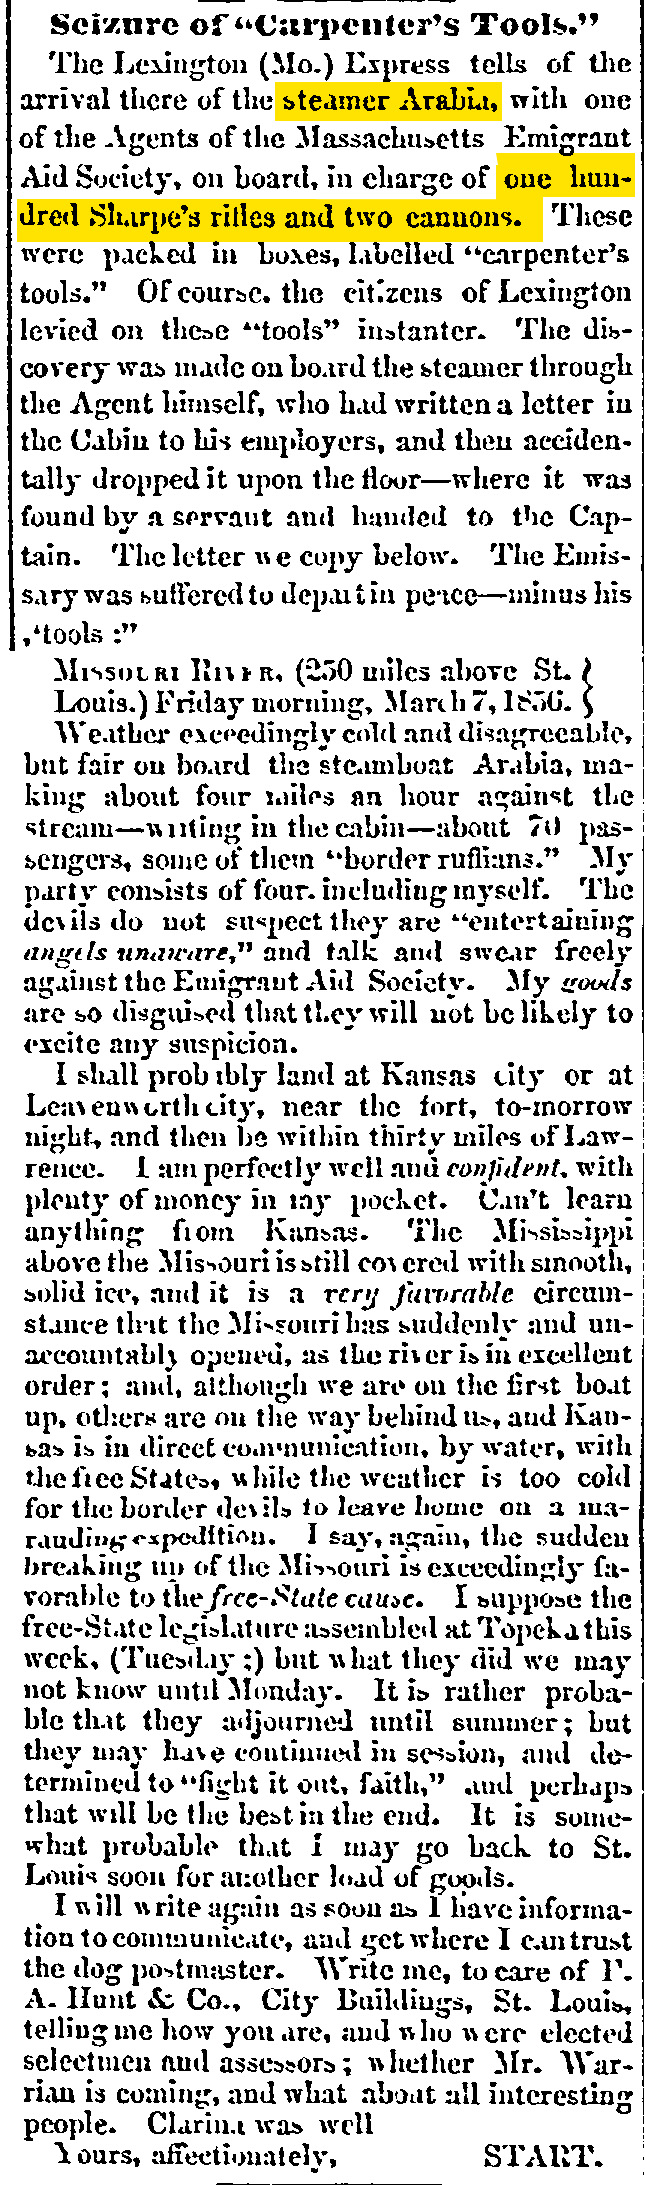 Macon Weekly Telegraph 1 April 1856 copy